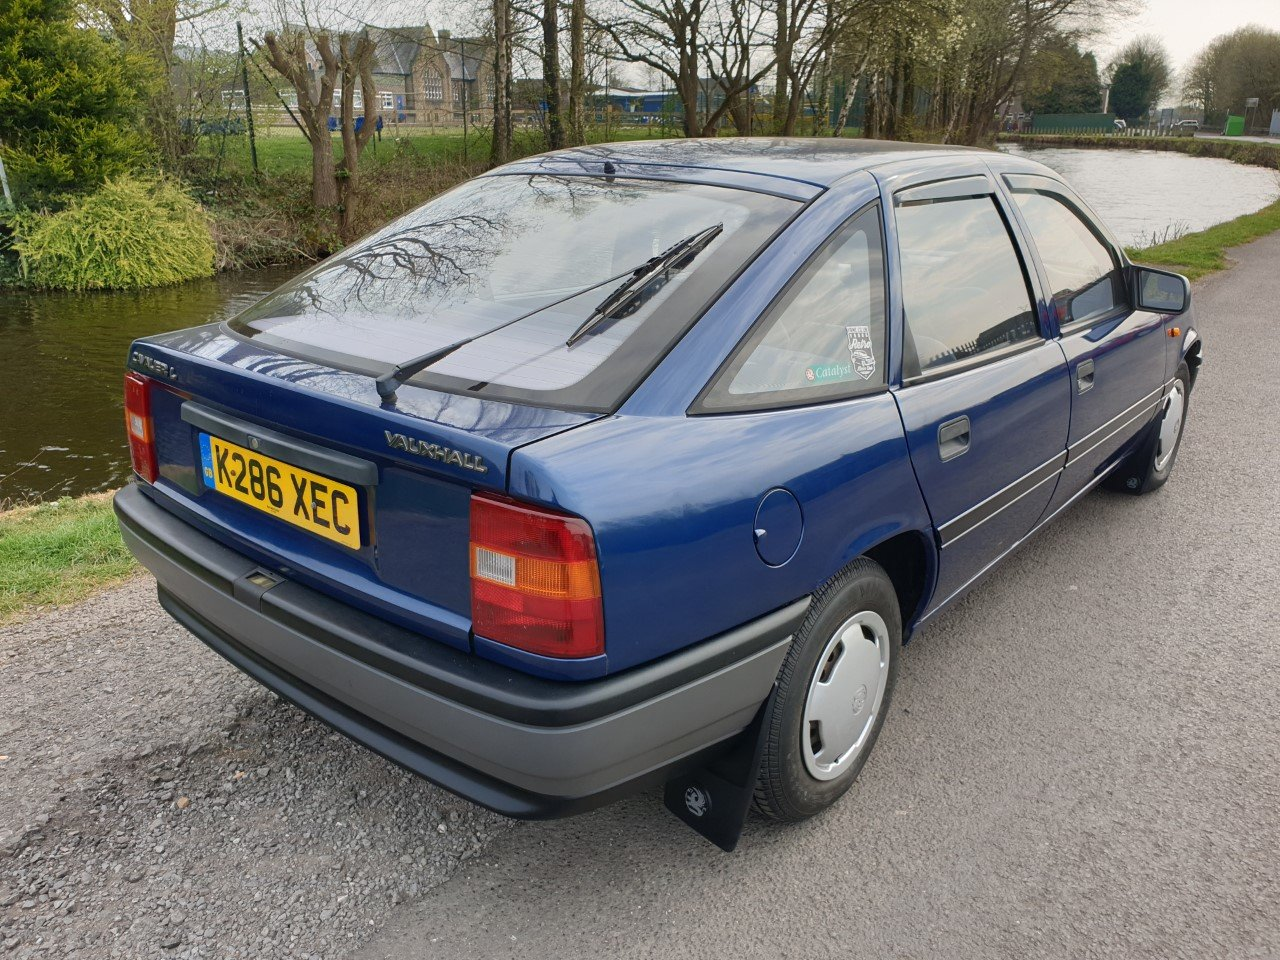 1992 Vauxhall Cavalier 1.6L Hatchback -  only 44,023 miles  For Sale (picture 2 of 6)